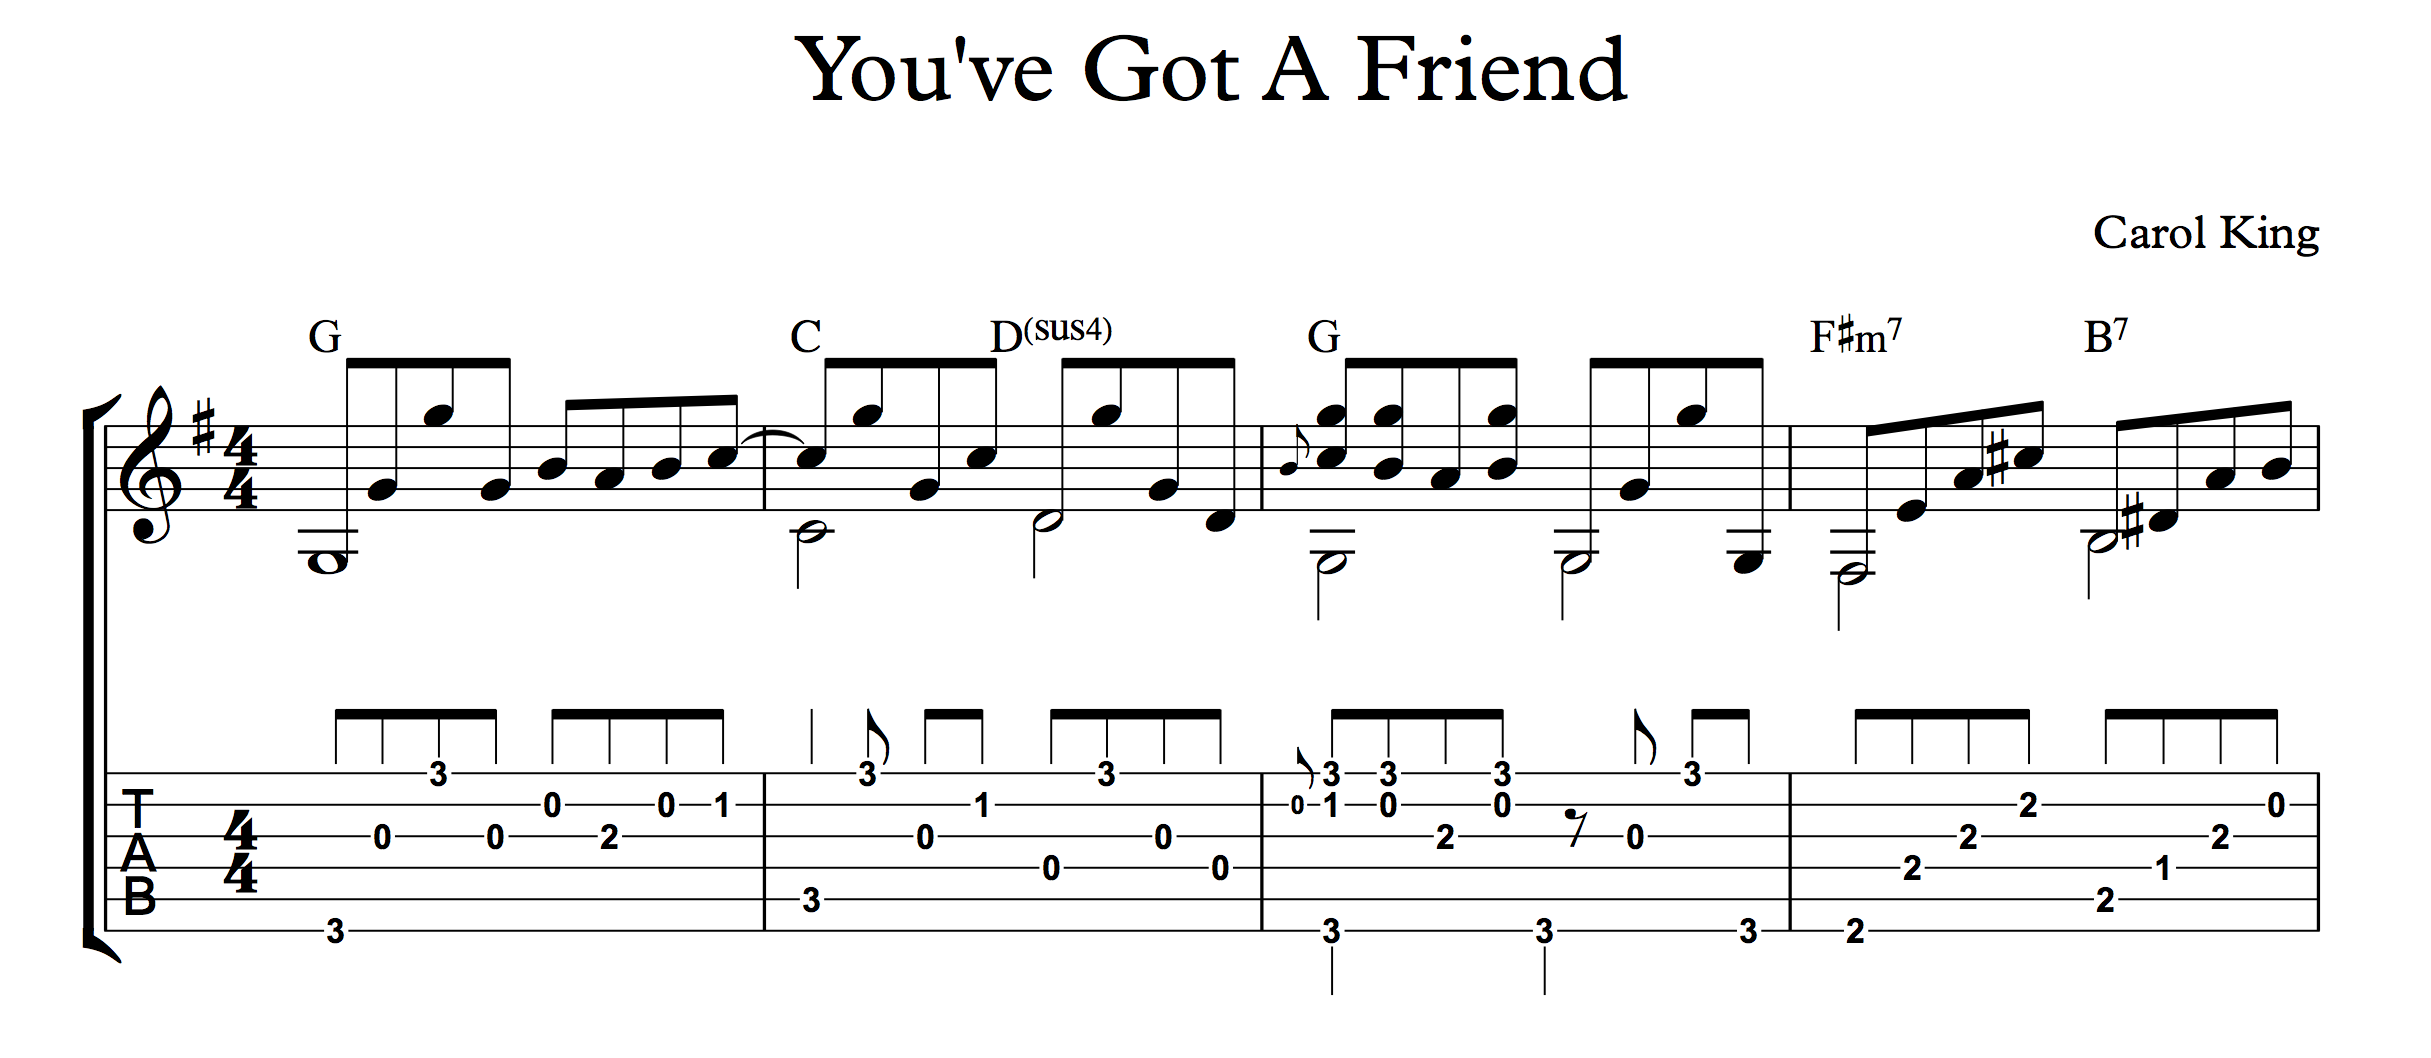 You've Got A Friend for fingerstyle guitar